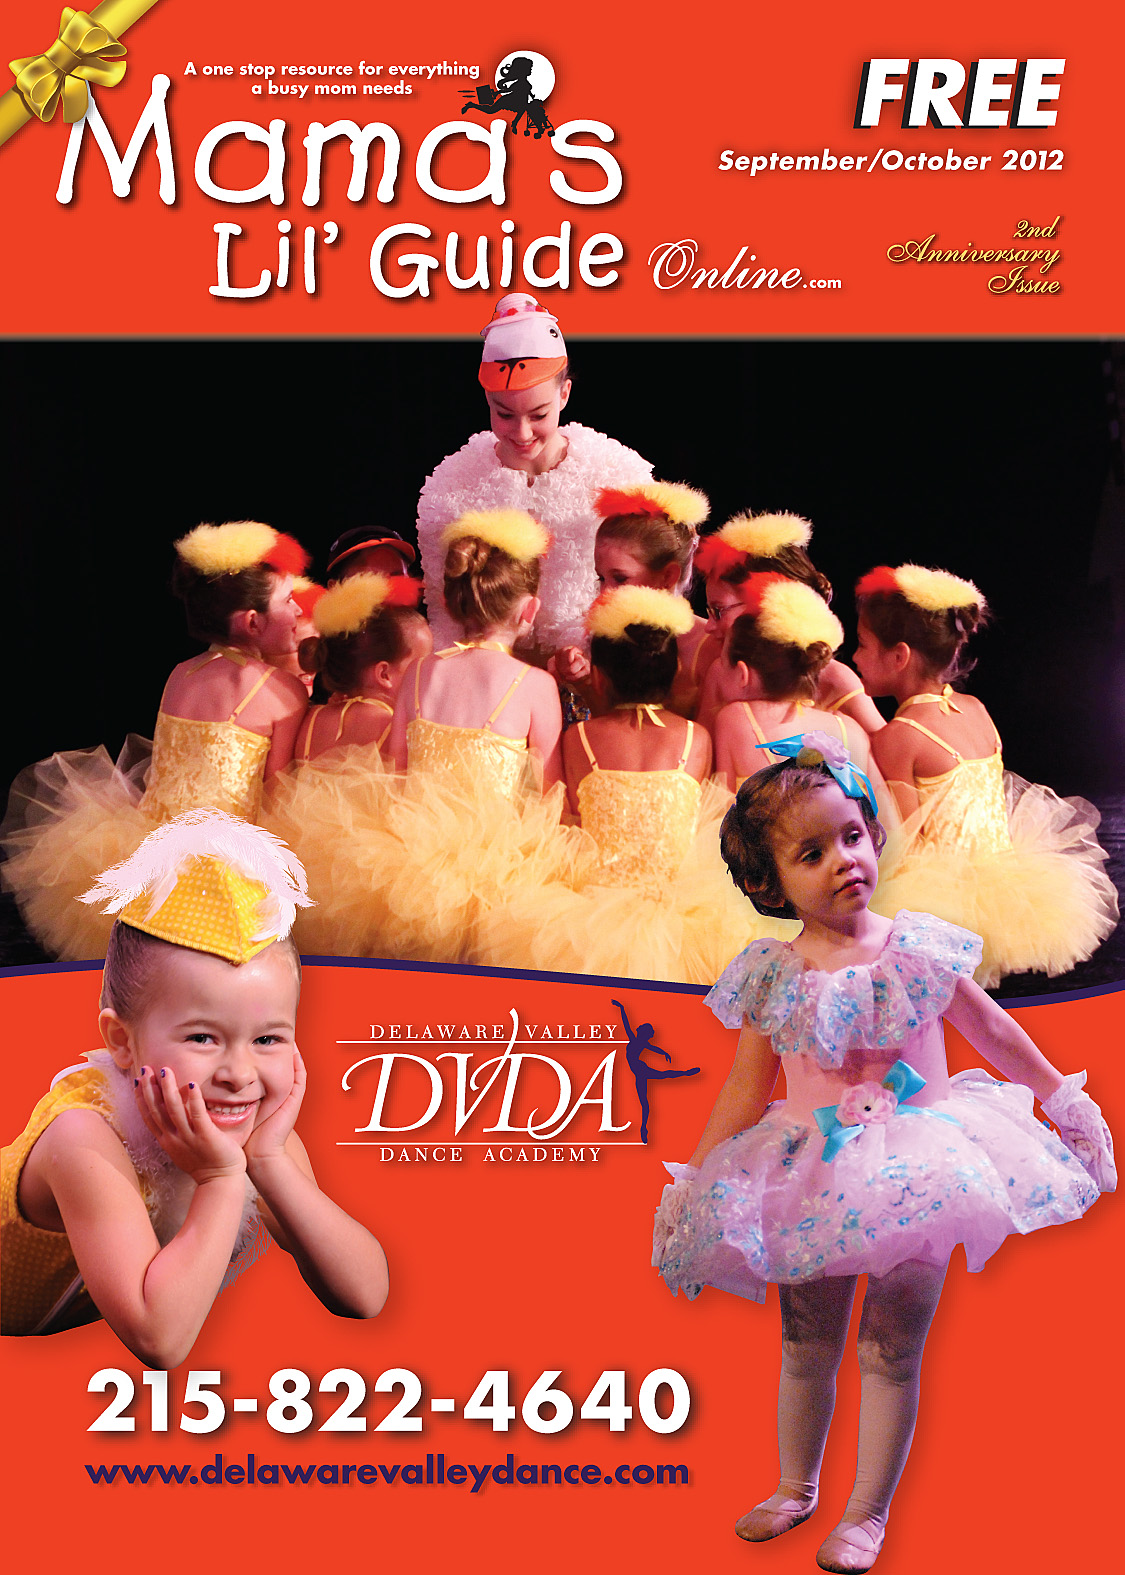 Mama's Lil' Guide Second Anniversary September/October 2012 Issue